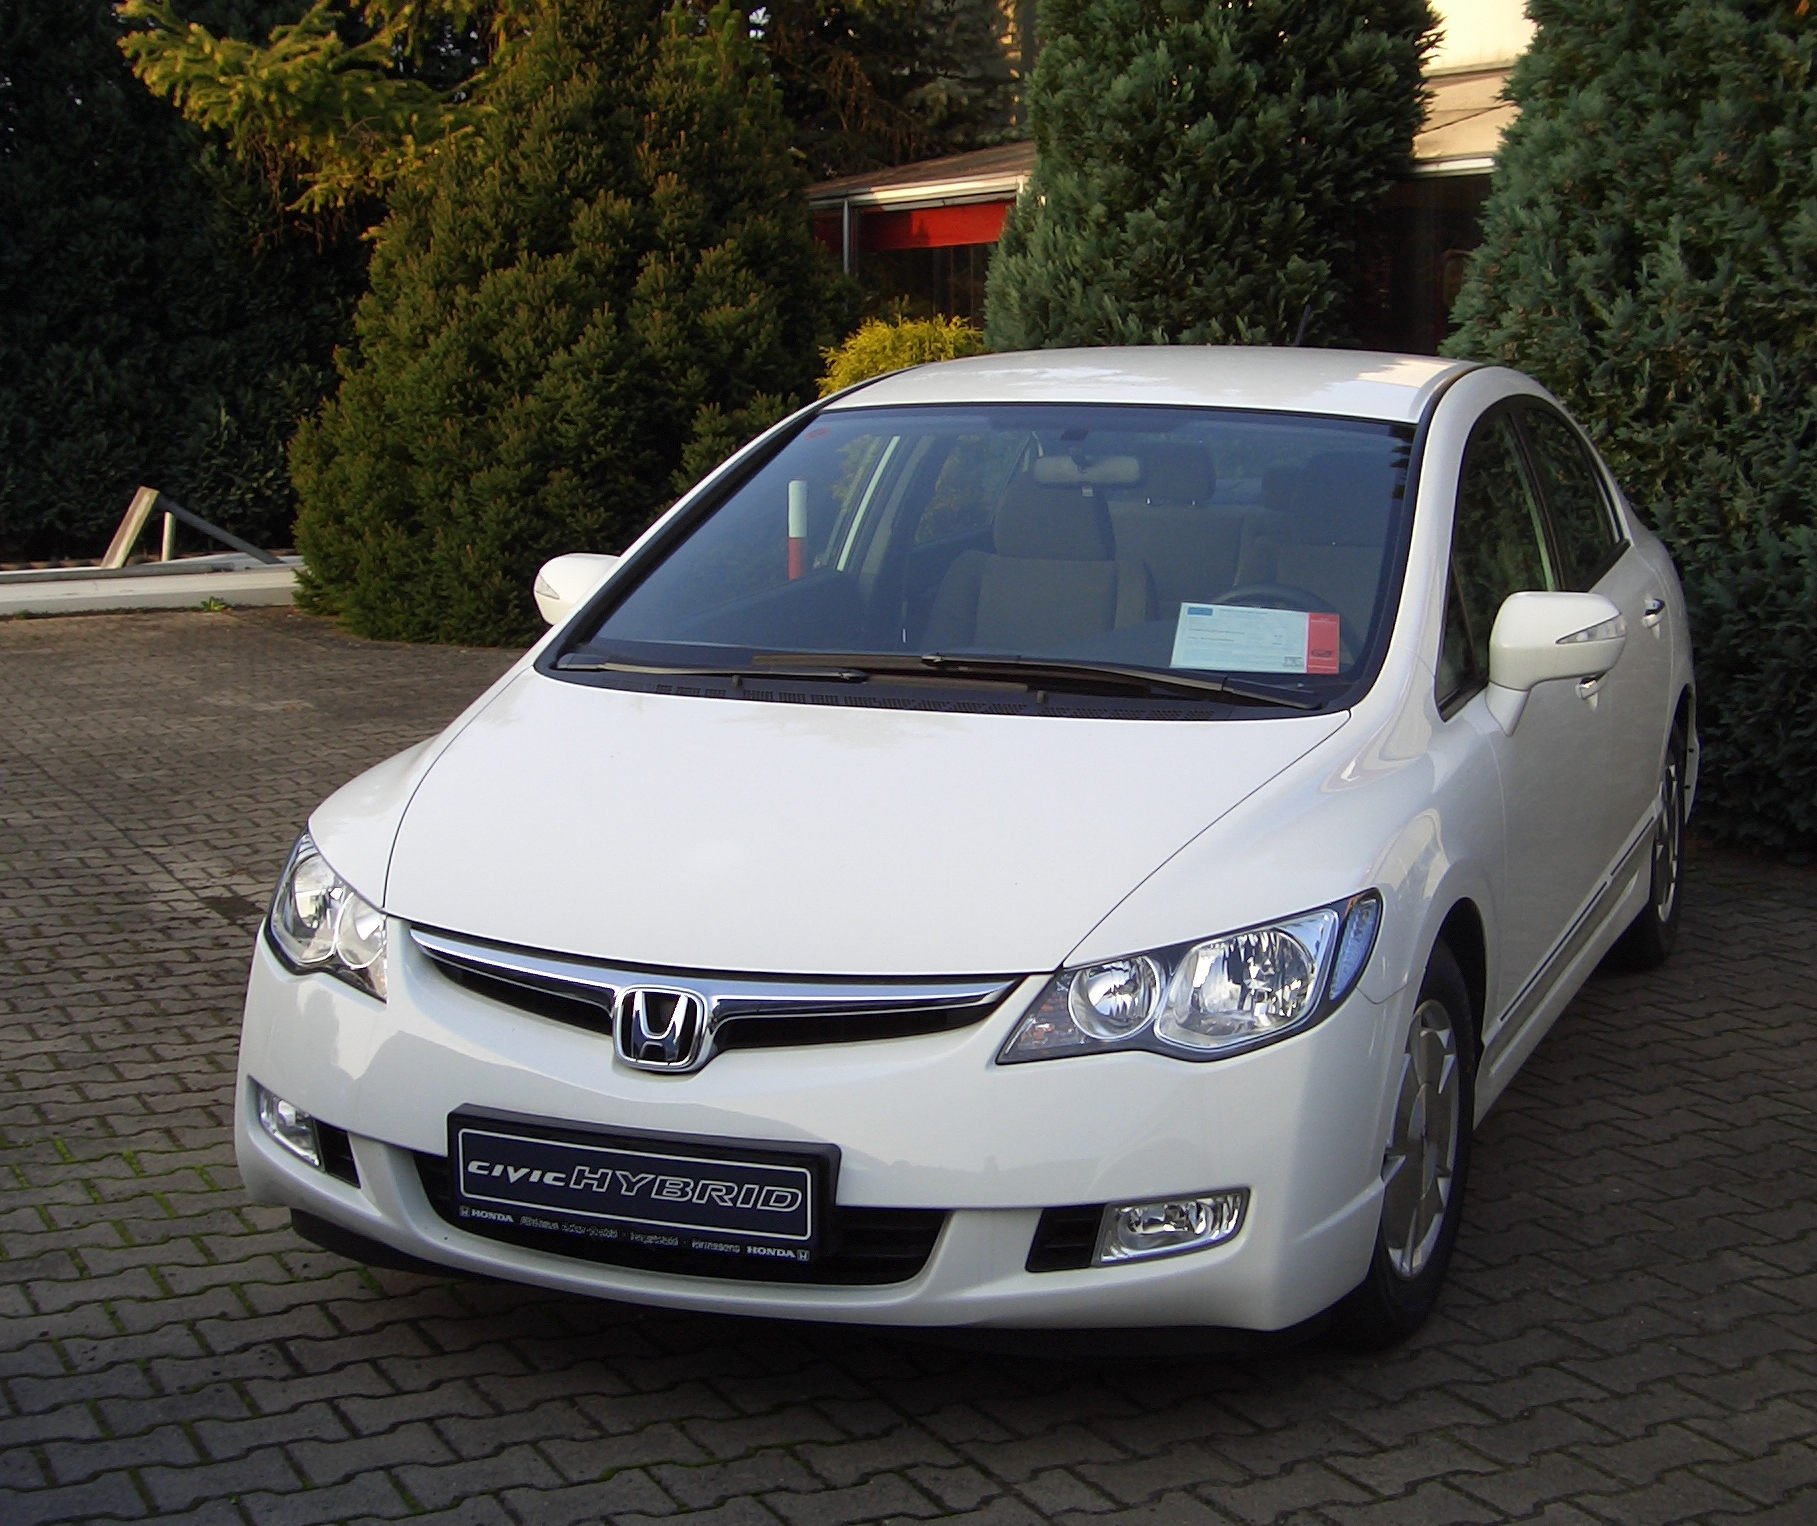 File Honda Civic Hybrid 2007 White Jpg Wikipedia